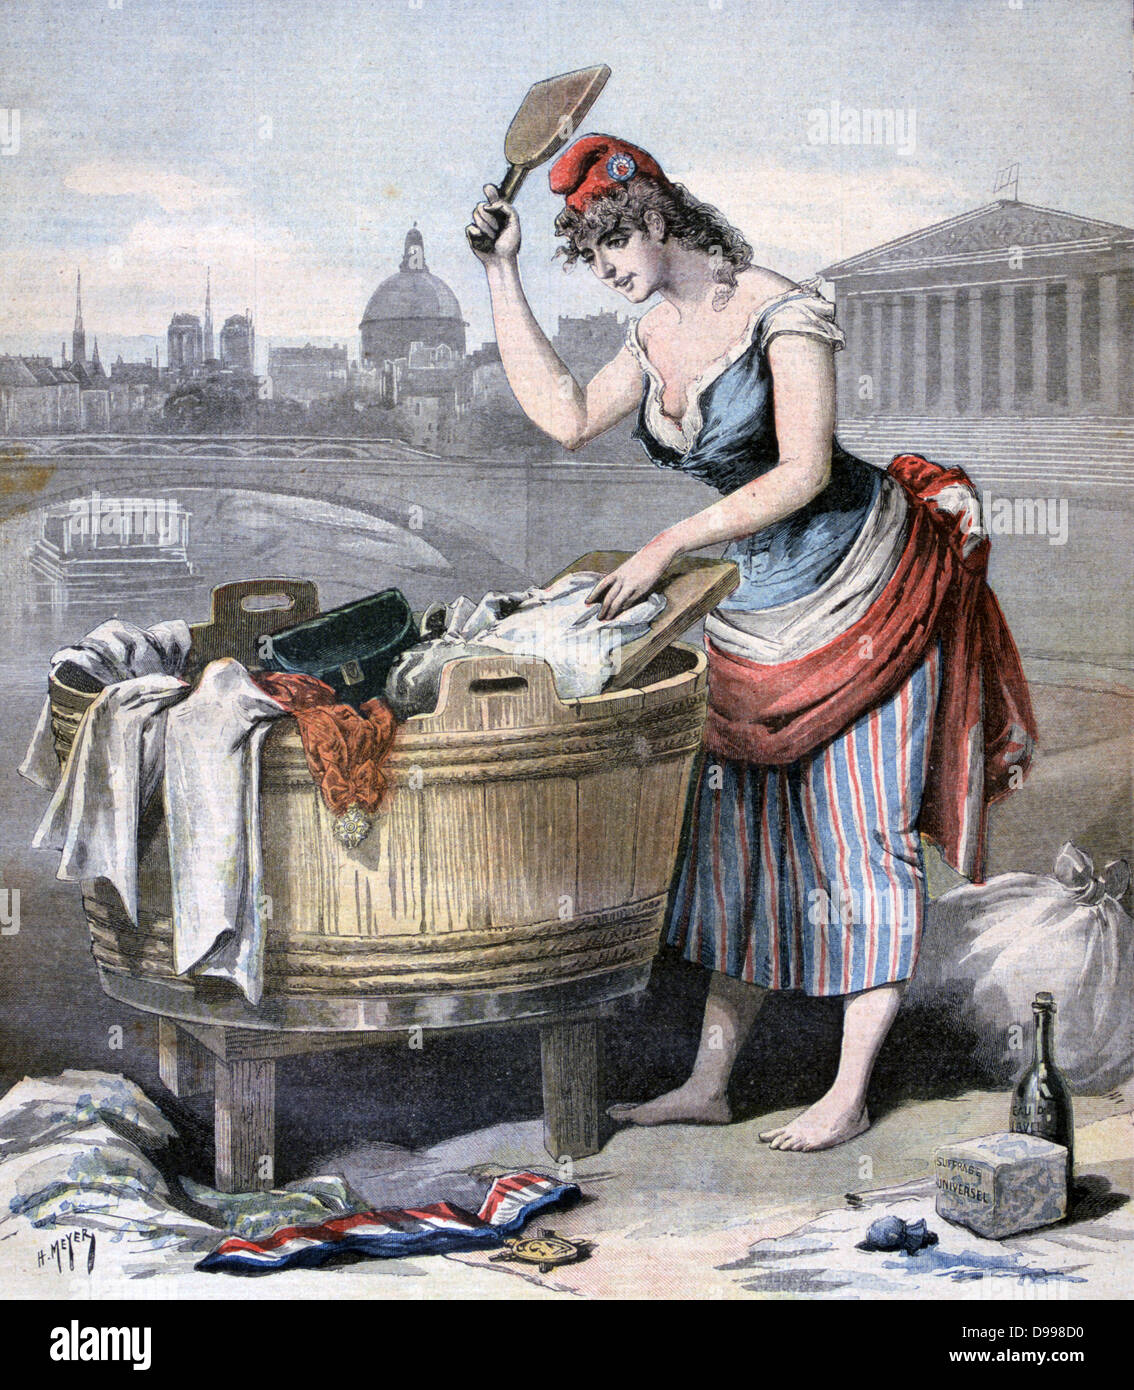 Paris Carnival, which lasted from Epiphany to Lent, elected a Queen of Laundresses. Marianne, symbol of Liberty - Stock Image